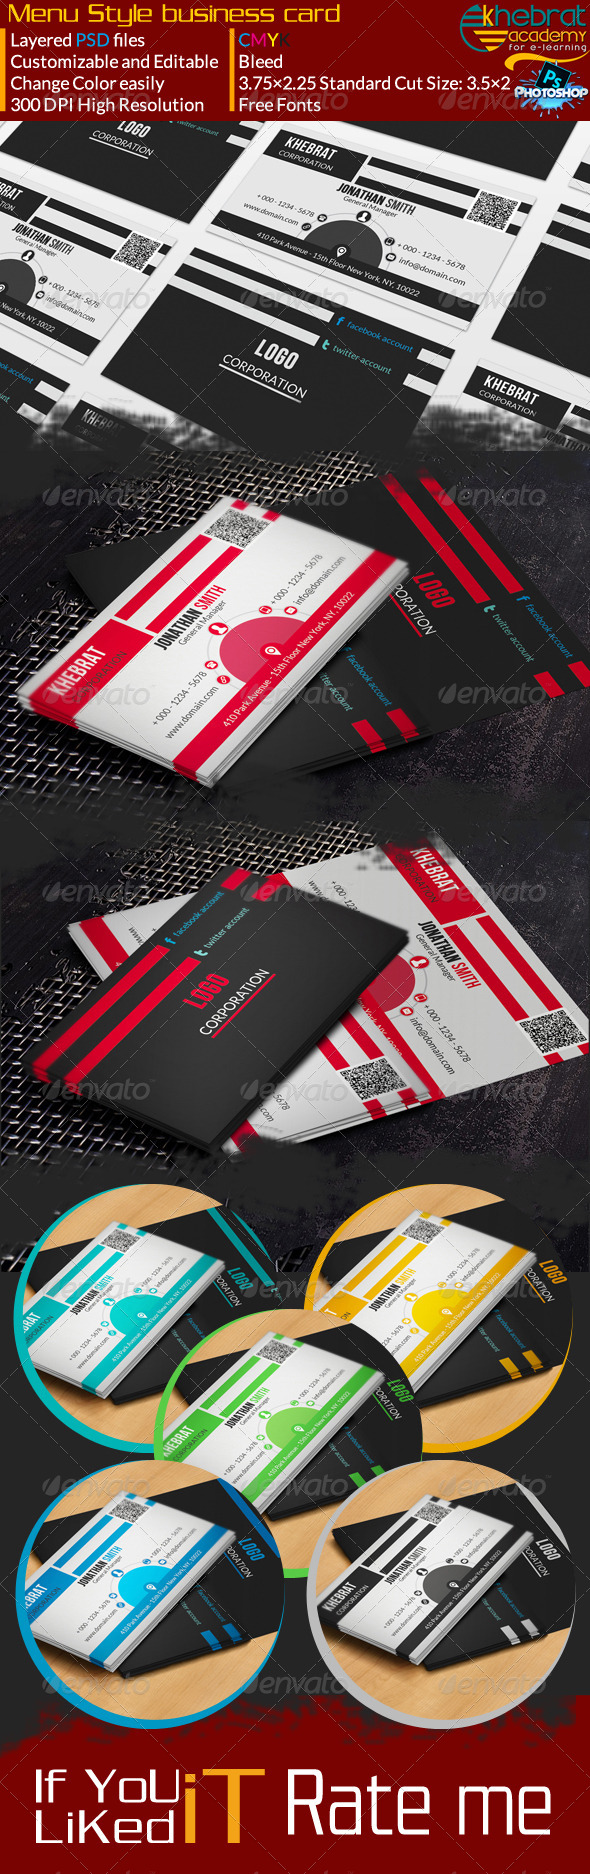 GraphicRiver Menu Style Corporate Business Card V02 7024040